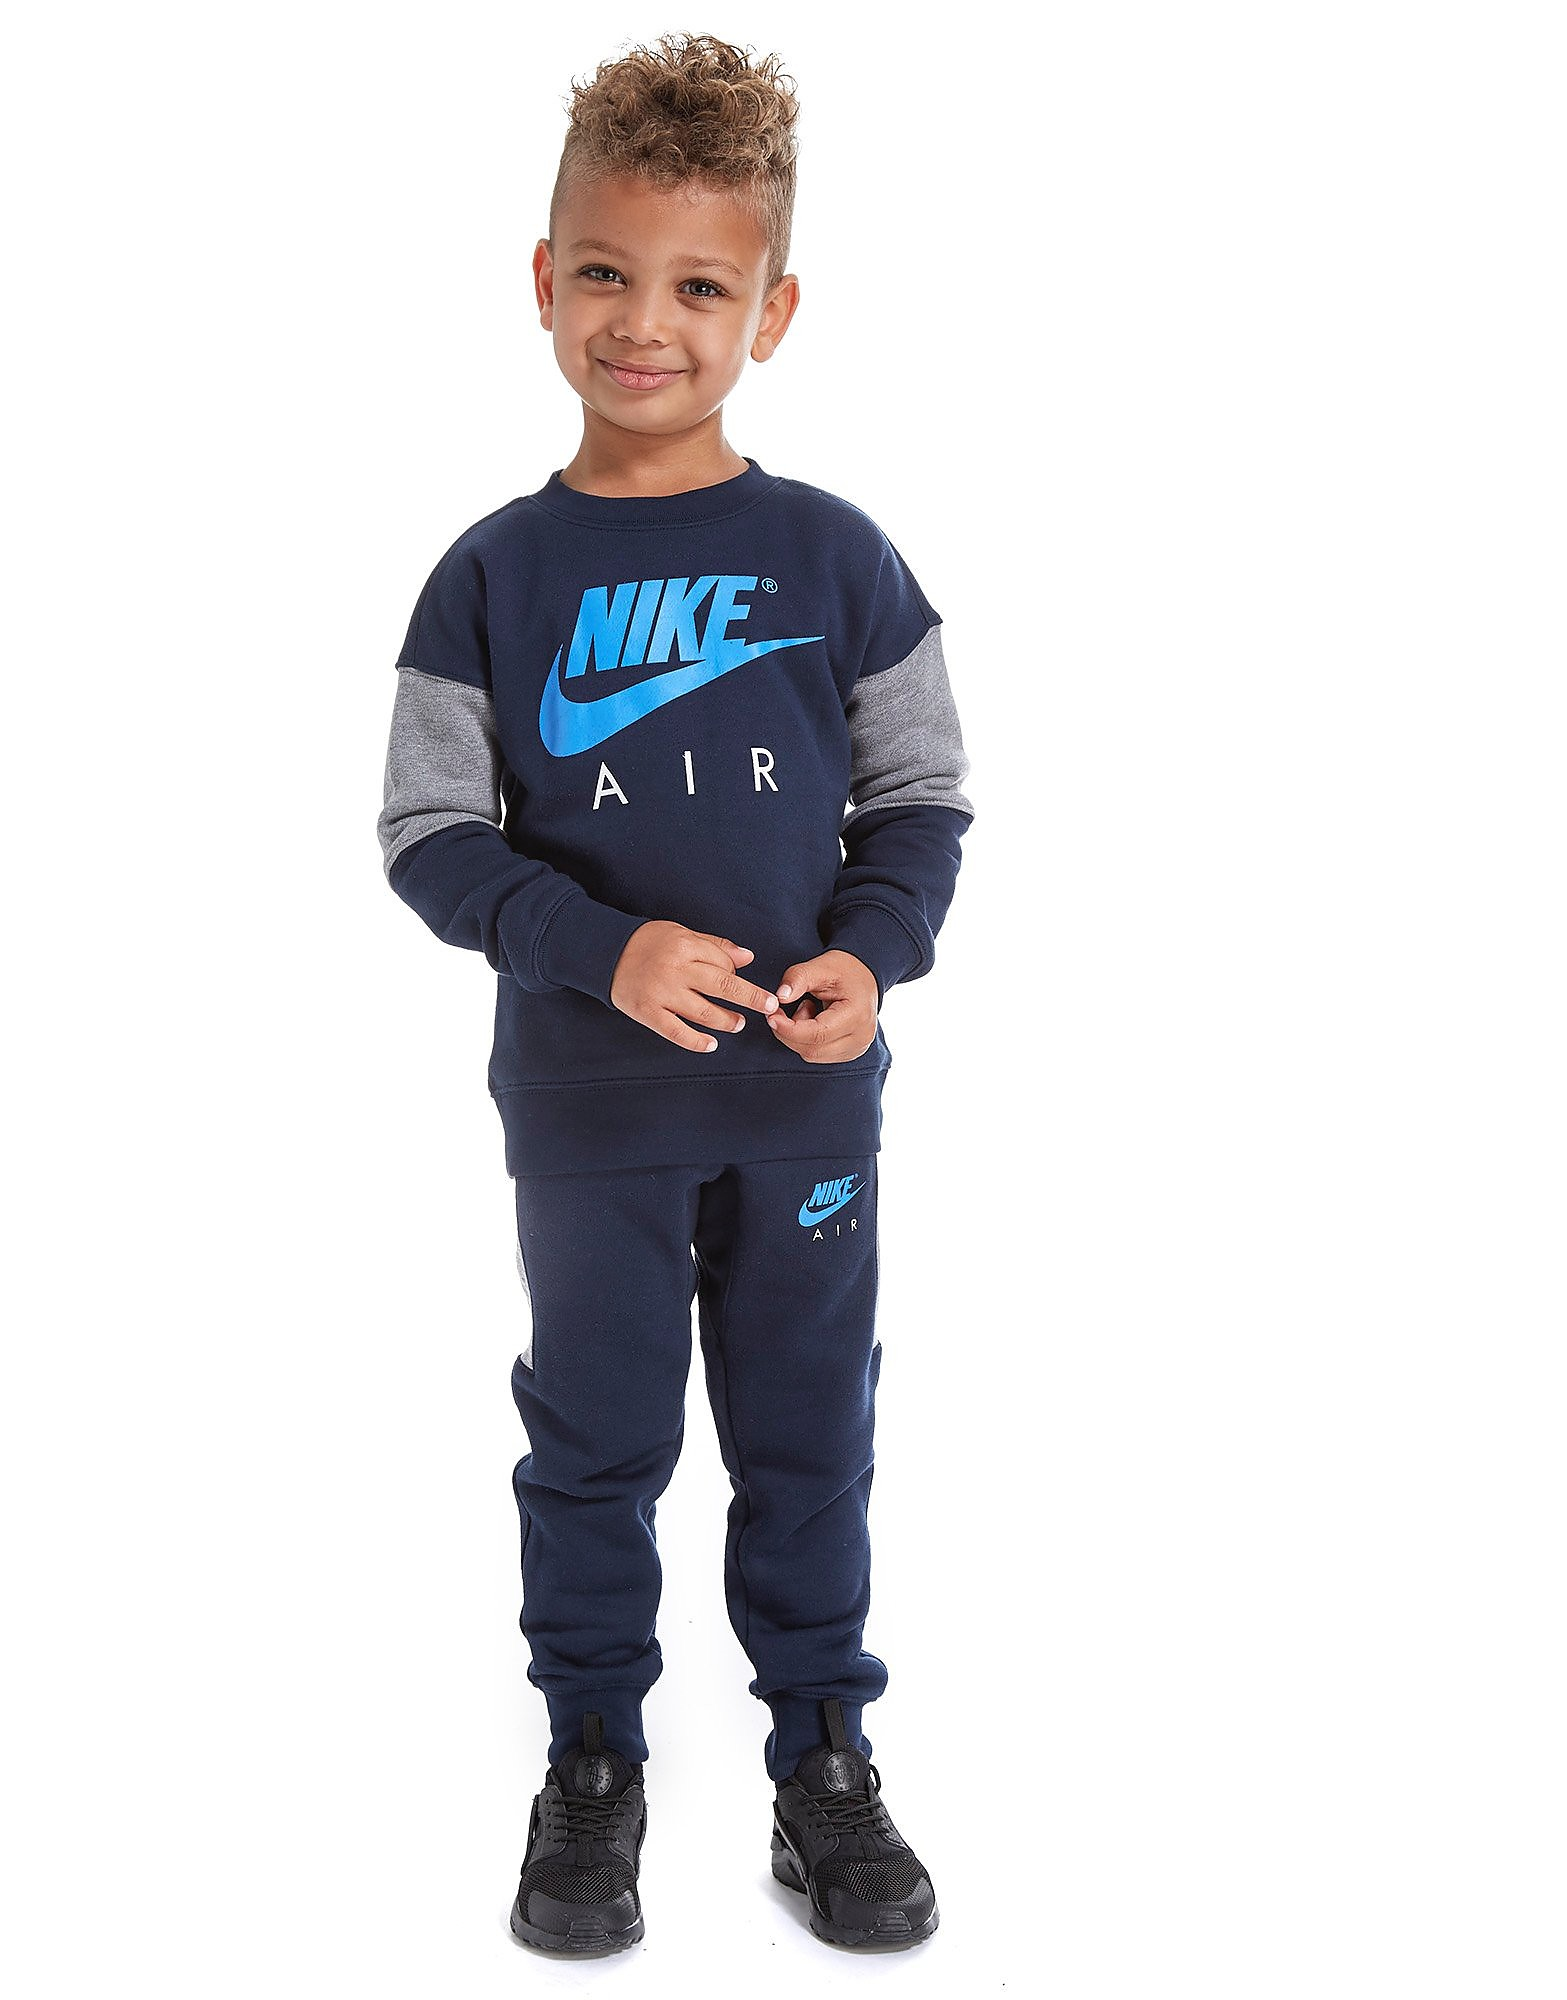 Nike Air Suit Children's